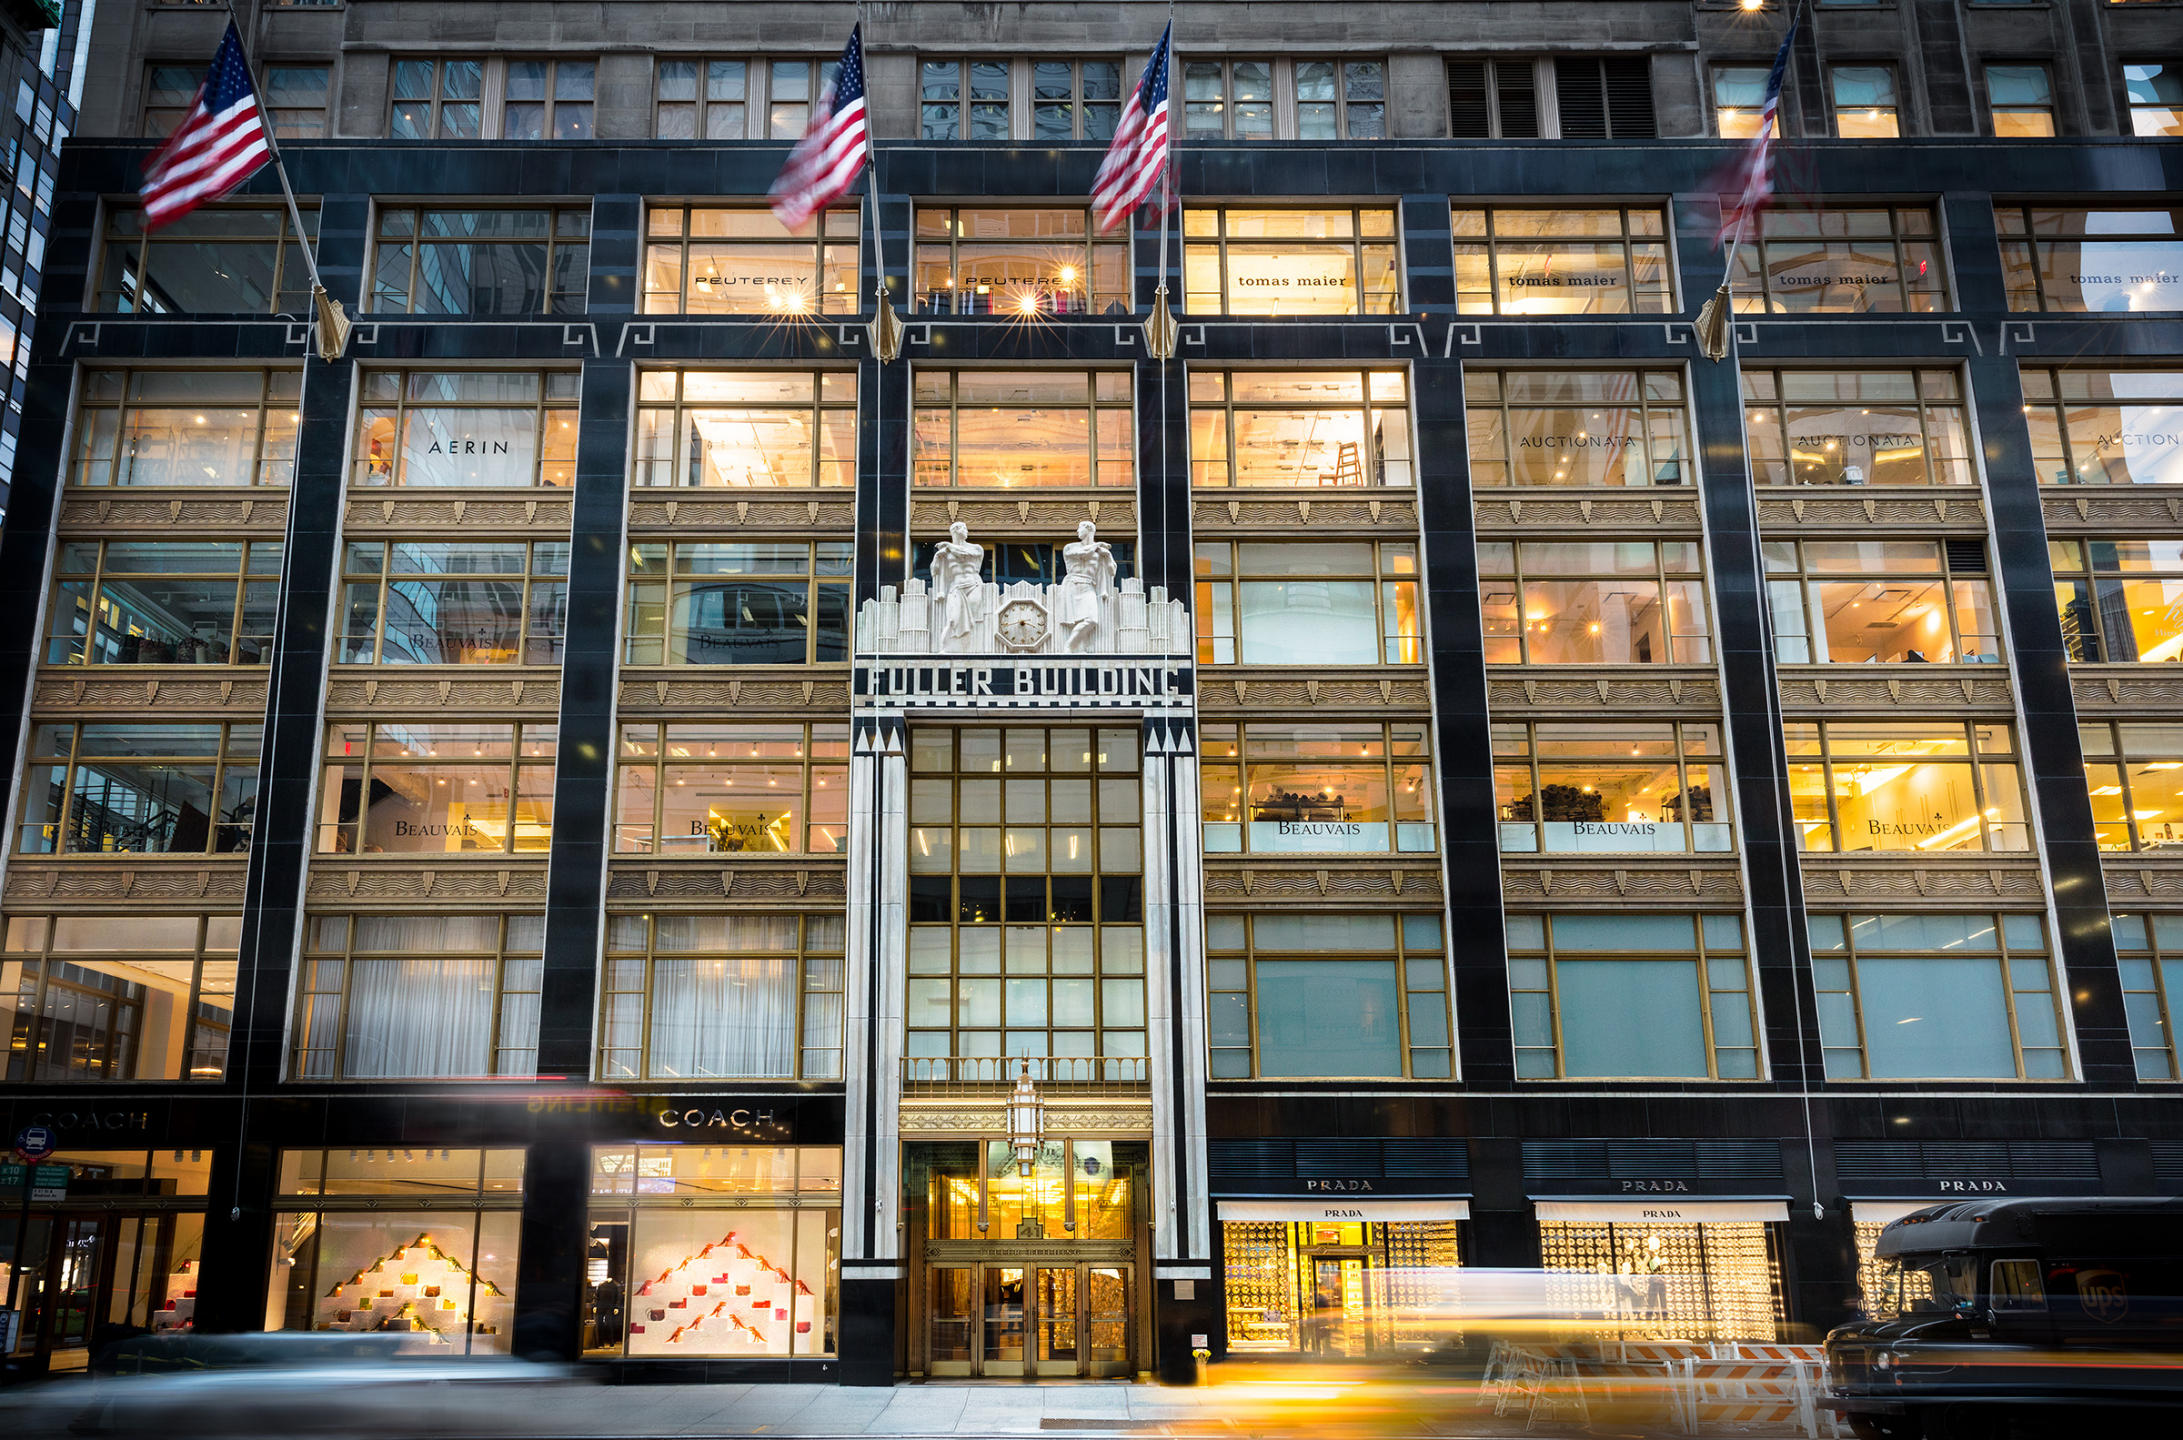 Front of the Fuller Building on 57th and Madison Avenue - NYC used on the website to set location for Dankner Milstein Lawfirm located in the Fuller Building - architectural exterior evening photograph : Miscellanous Projects : New York NY Architectural Photographer | Interior and Exterior